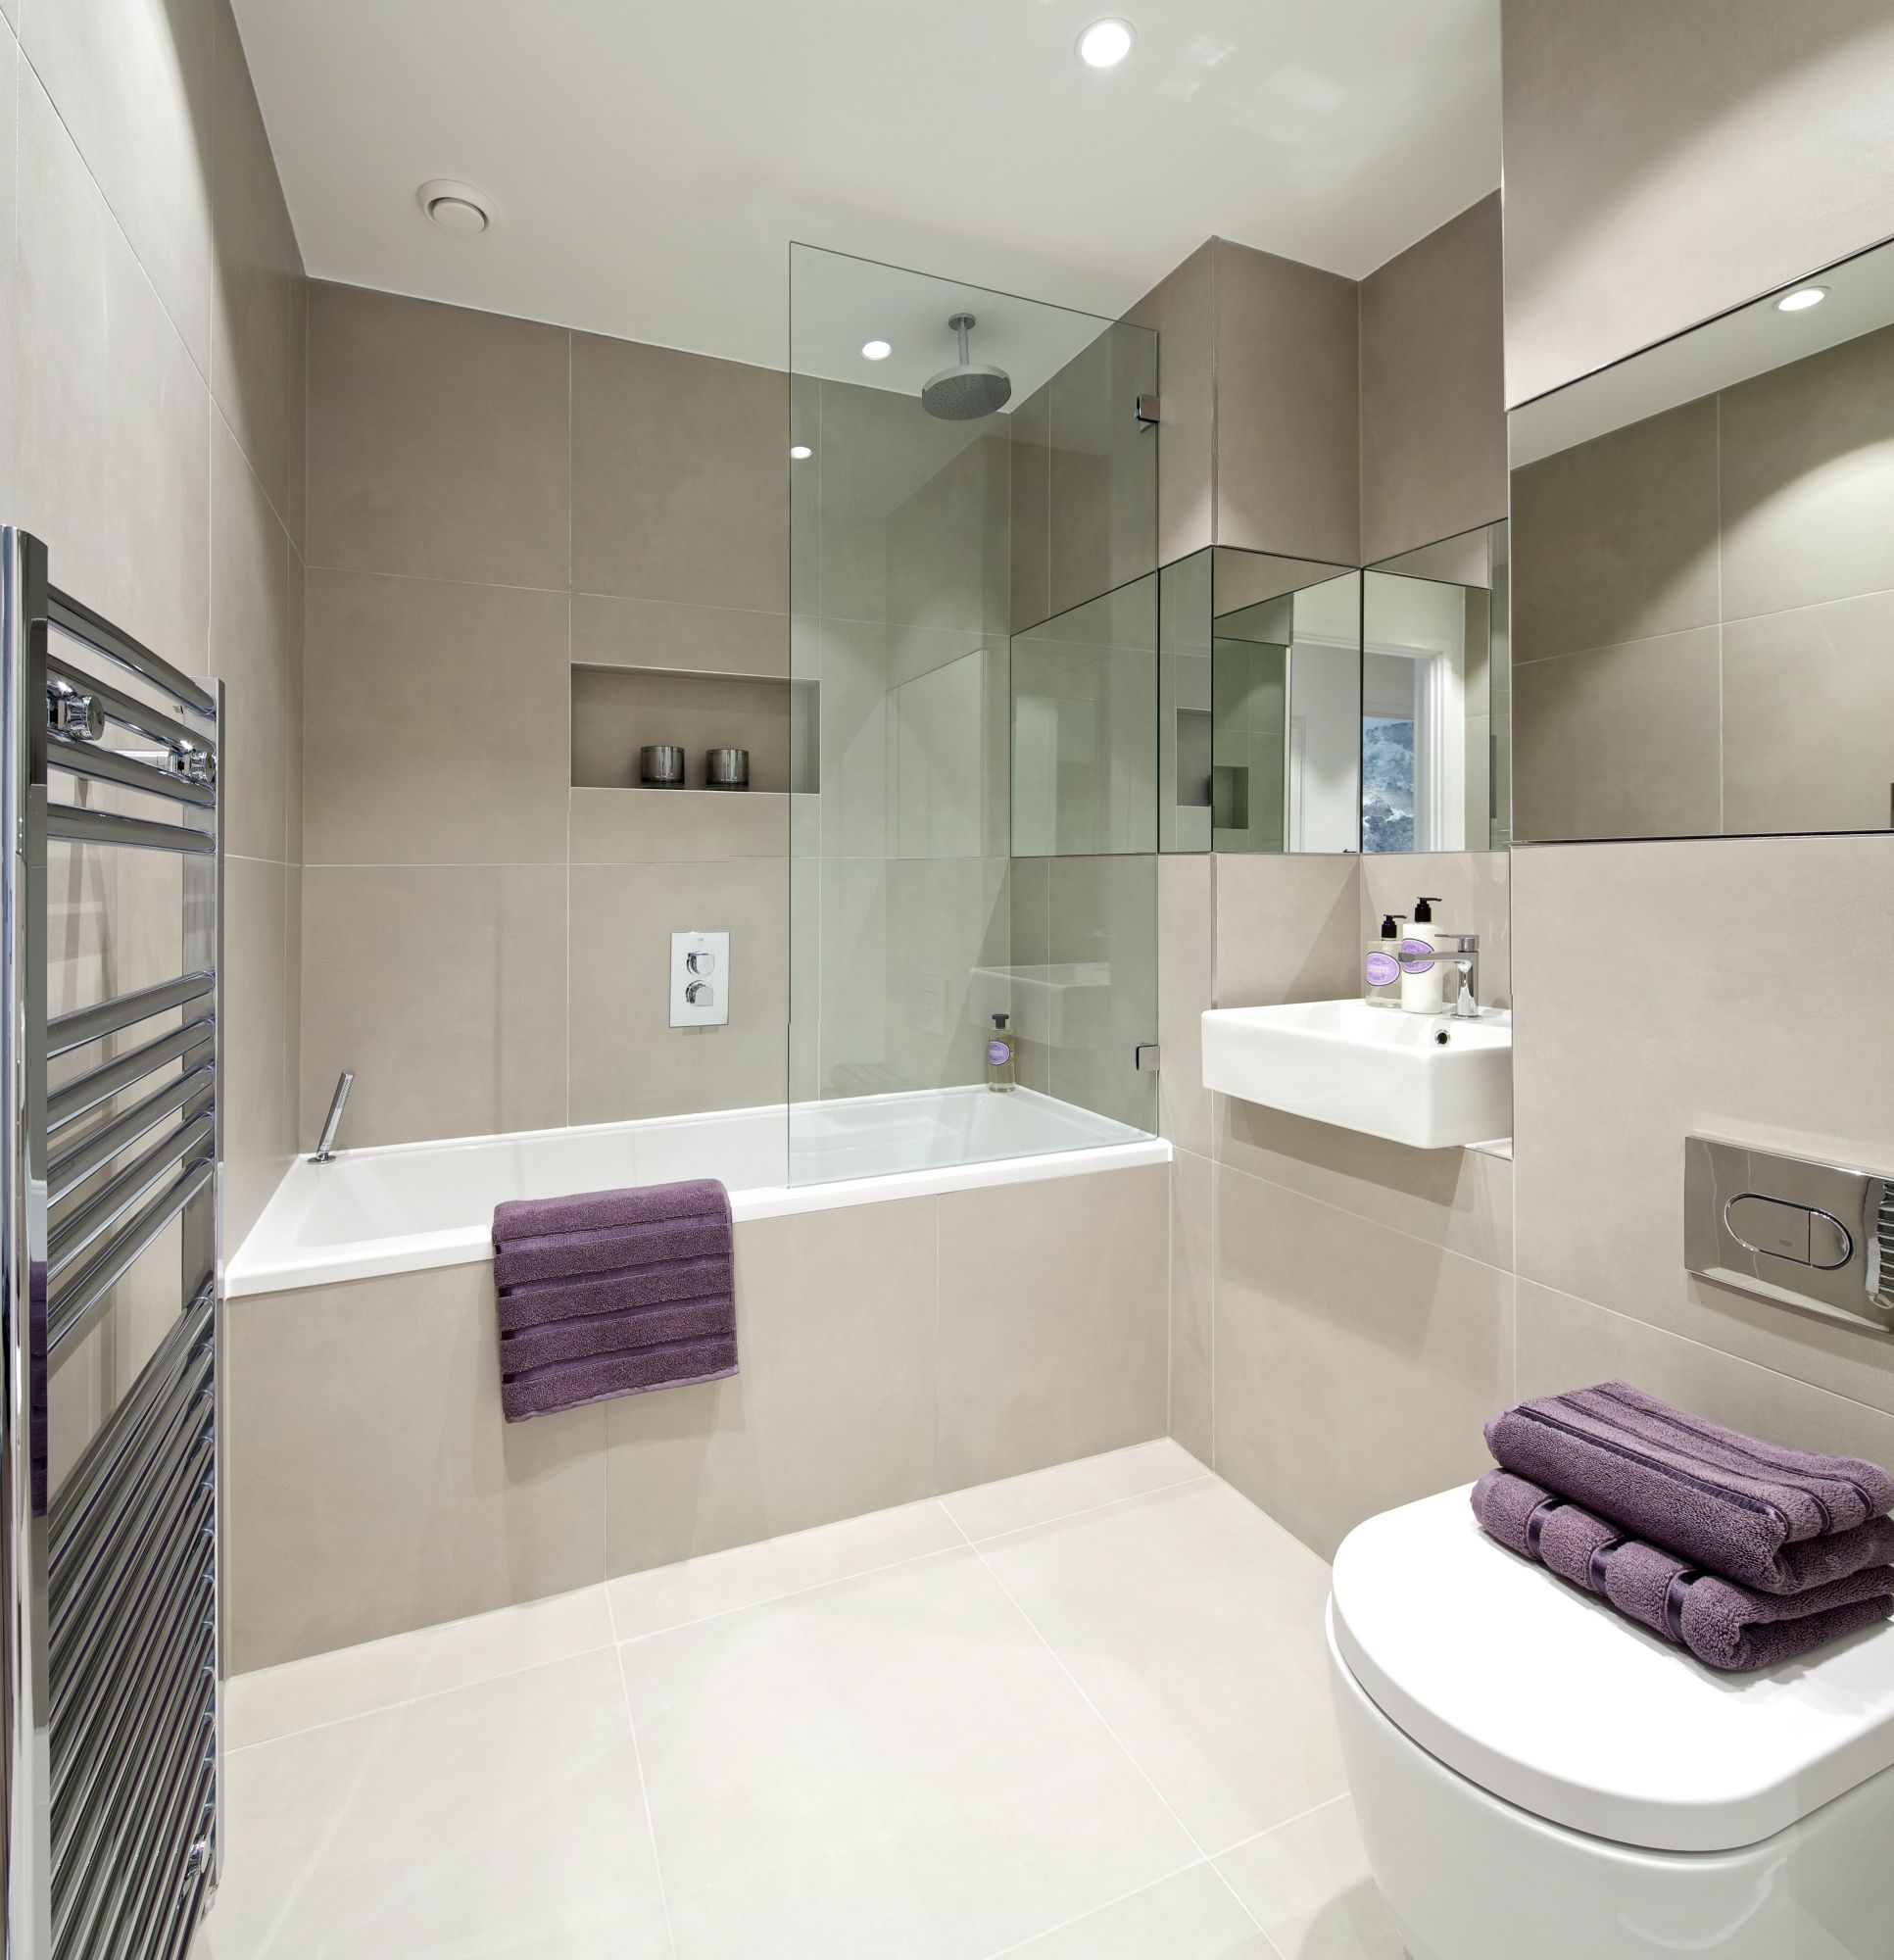 Home interiors bathroom - Stunning Home Interiors Bathroom Another Stunning Show Home Design By Suna Interior Design